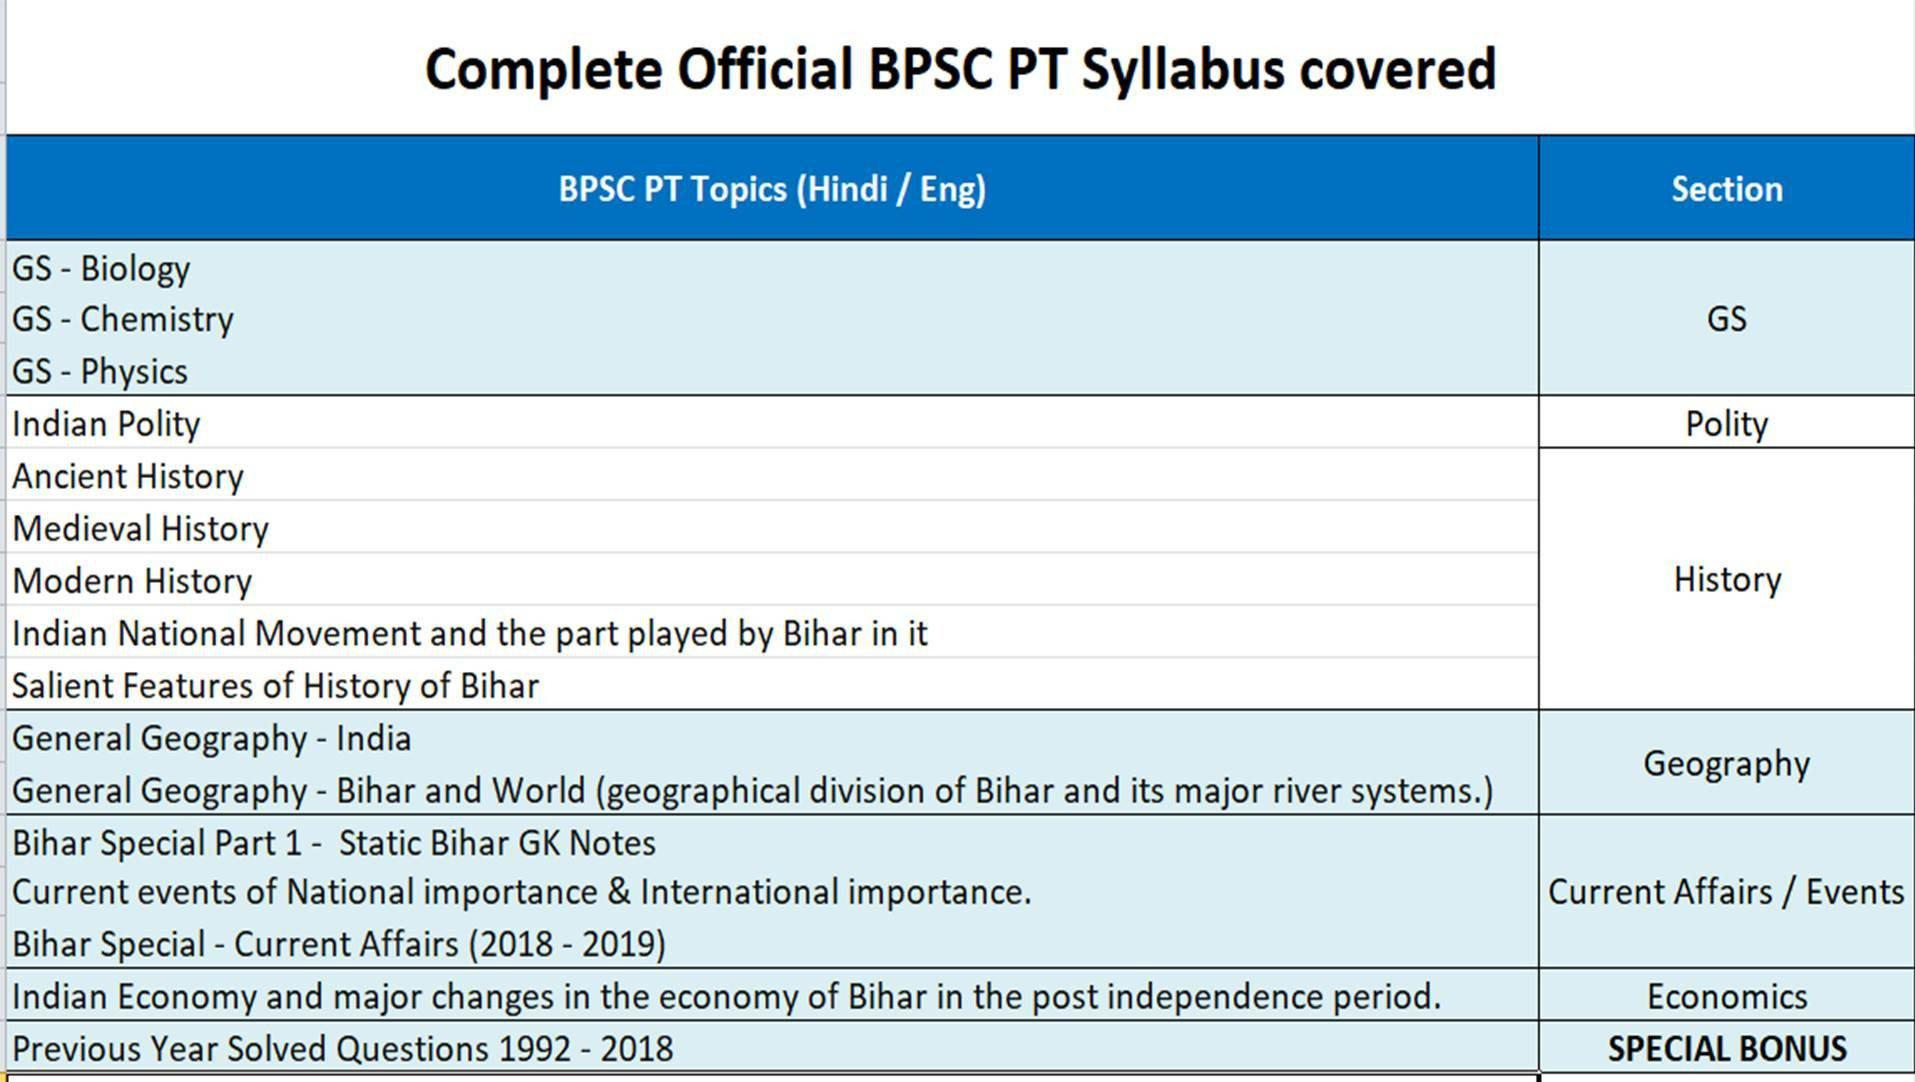 65th BPSC PT ALL IN 1 – Complete Syllabus Guide Notes + 15 Mock Test Series  + Previous Year Question Papers (1992 - 2018) [Hindi / English PDF]